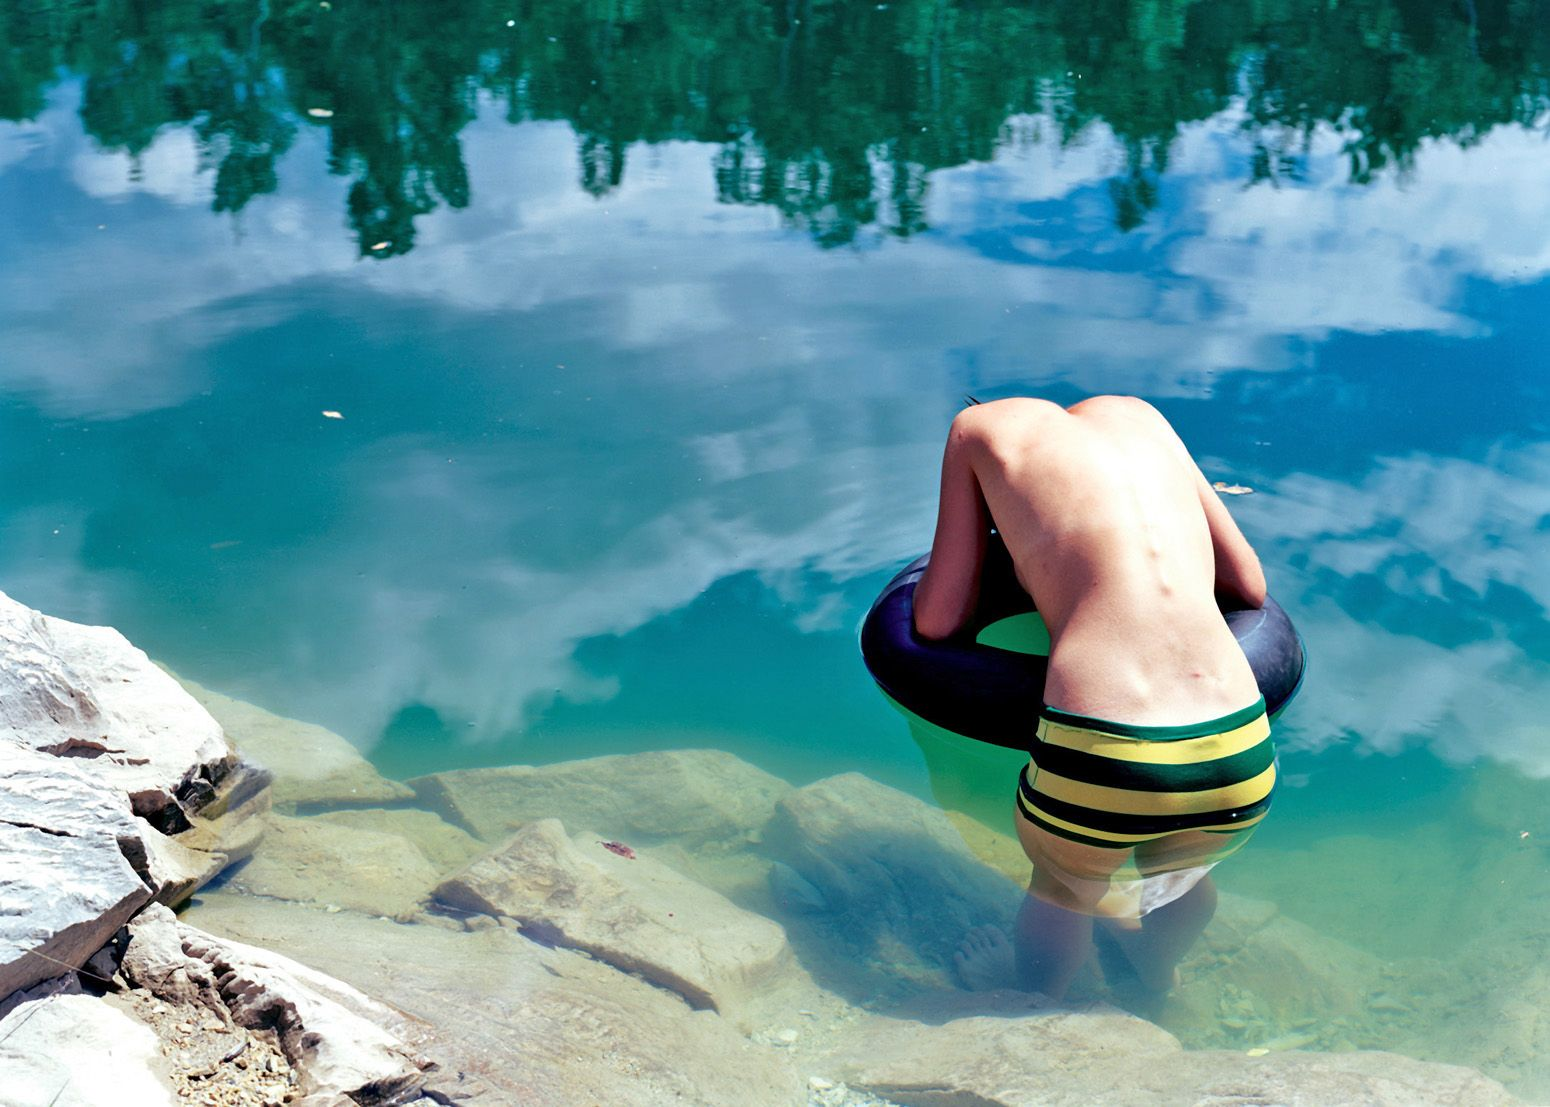 Joanna Case-Hofmeister  Ariel in the Quarry, 2006  Optical C-Print   30 x 40 inches